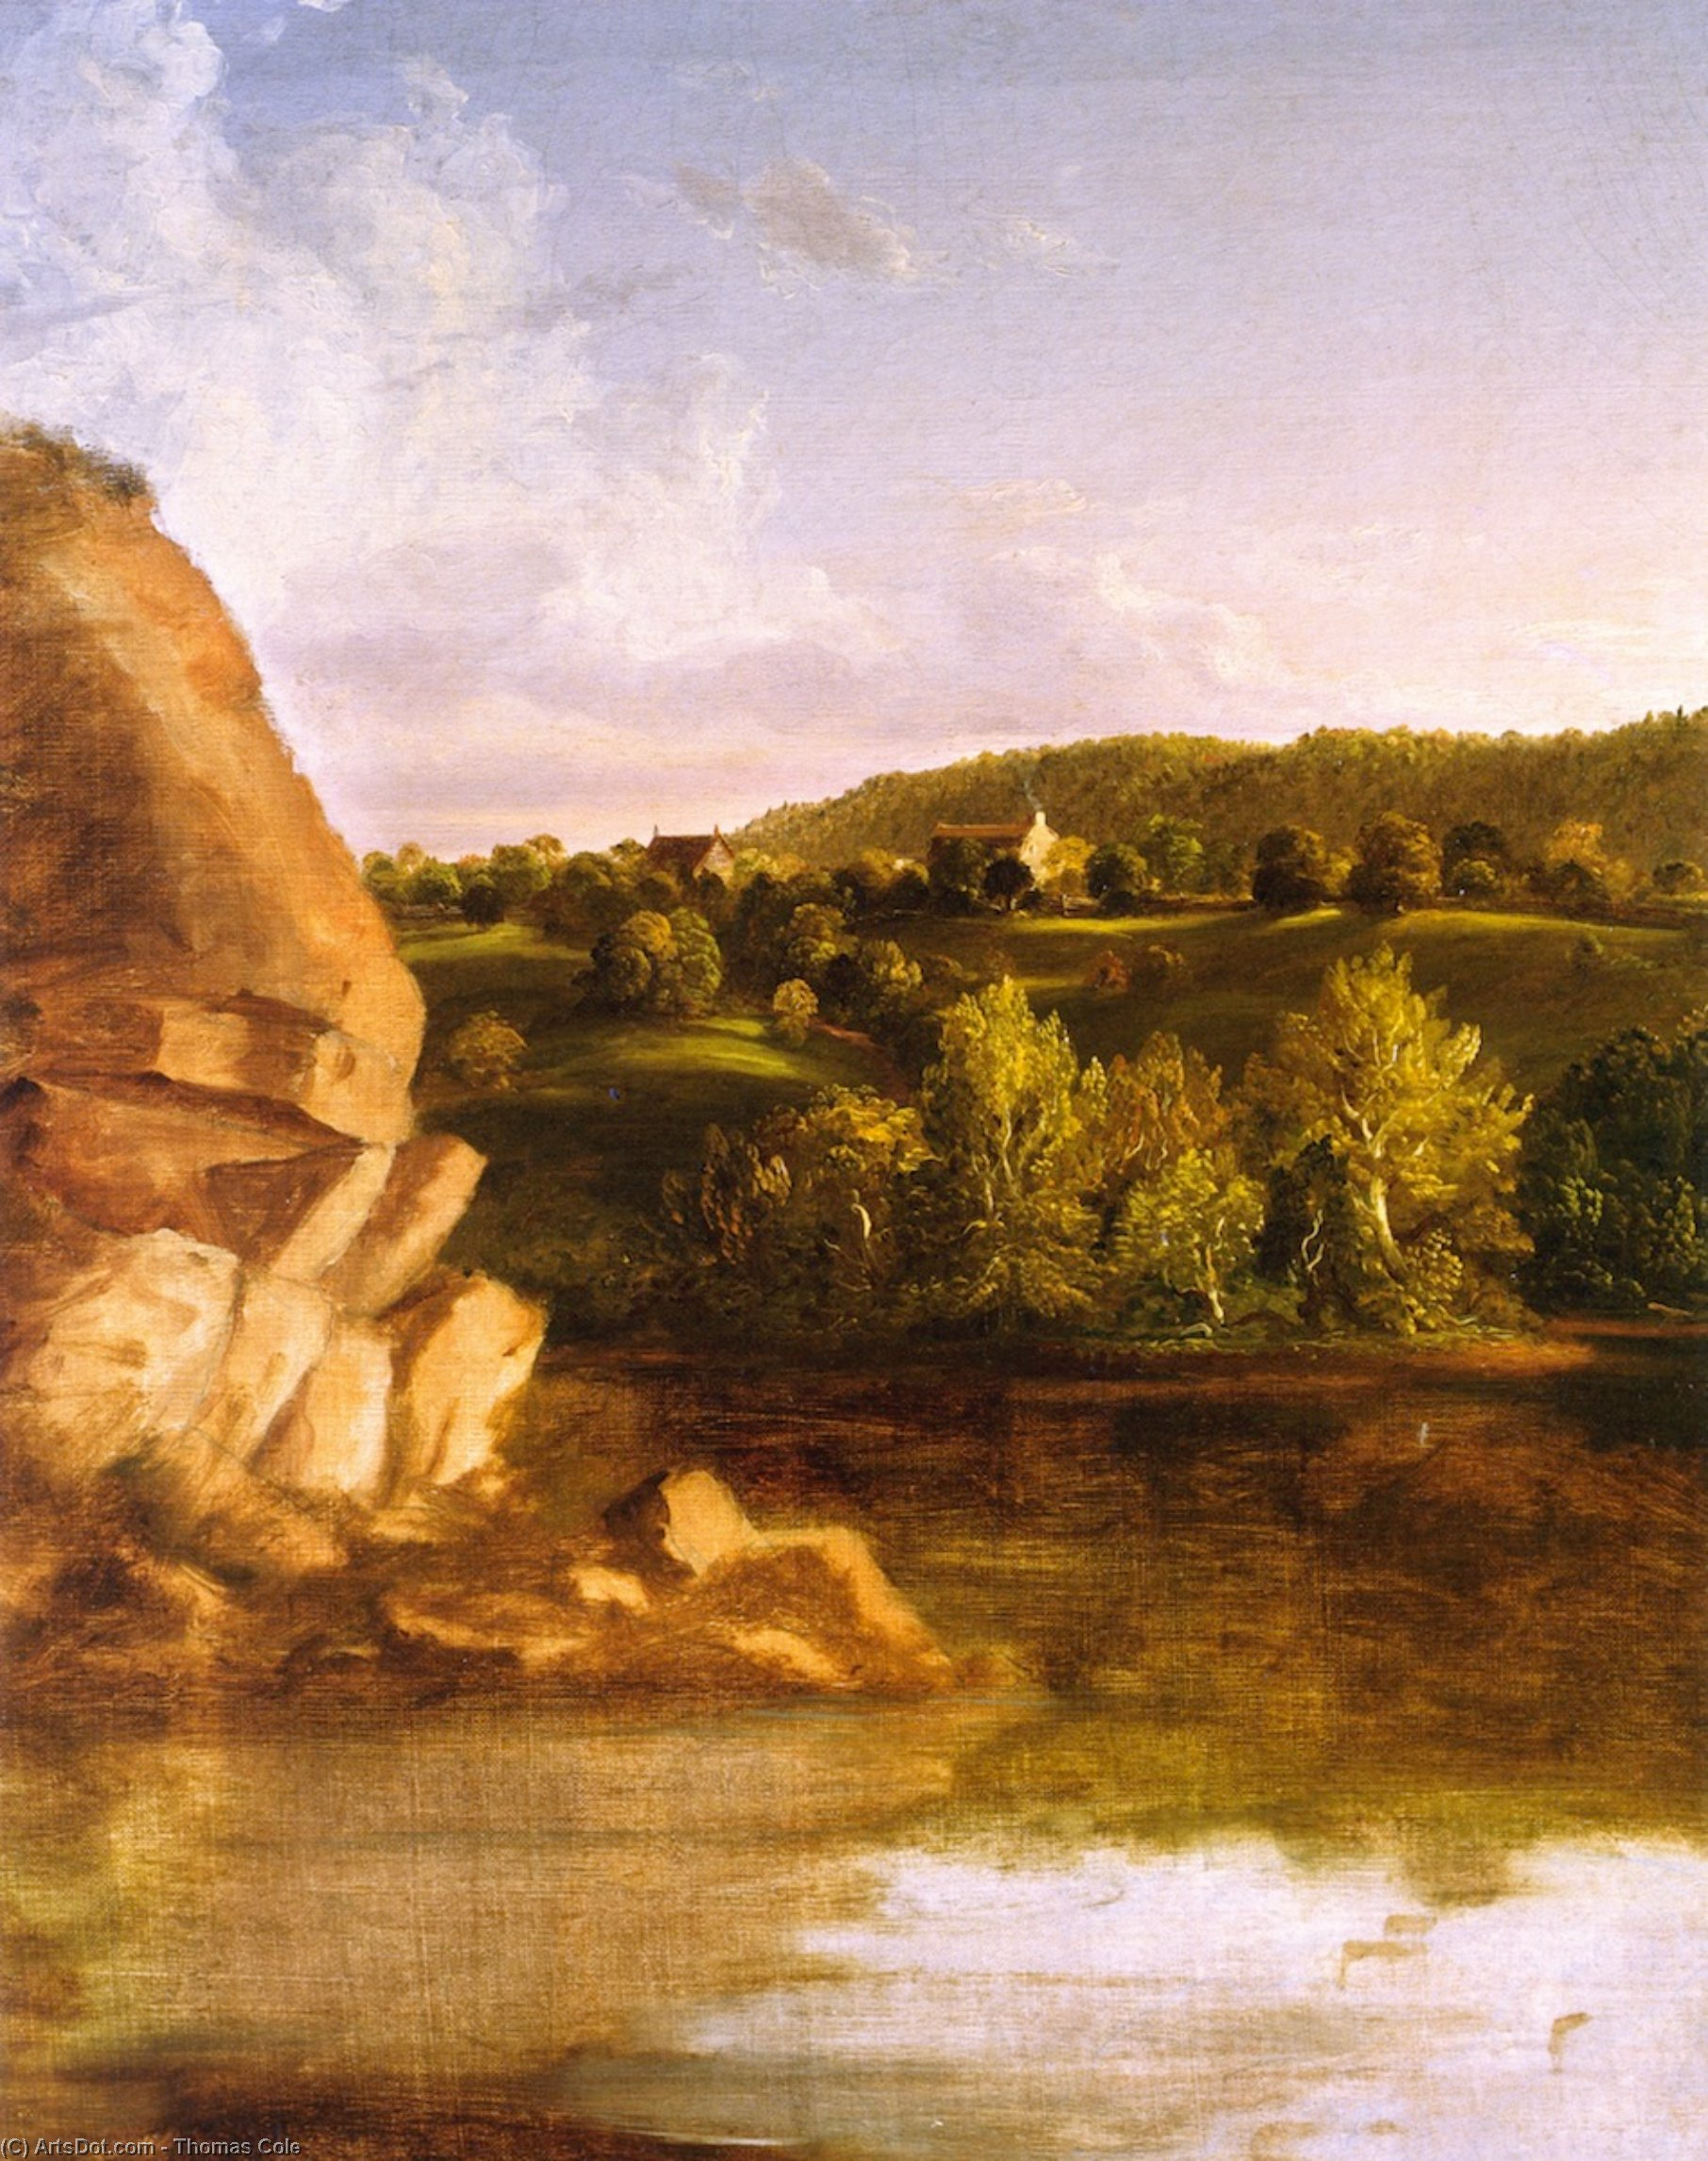 On Catskill Creek (unfinished?), Oil On Canvas by Thomas Cole (1801-1848, United Kingdom)